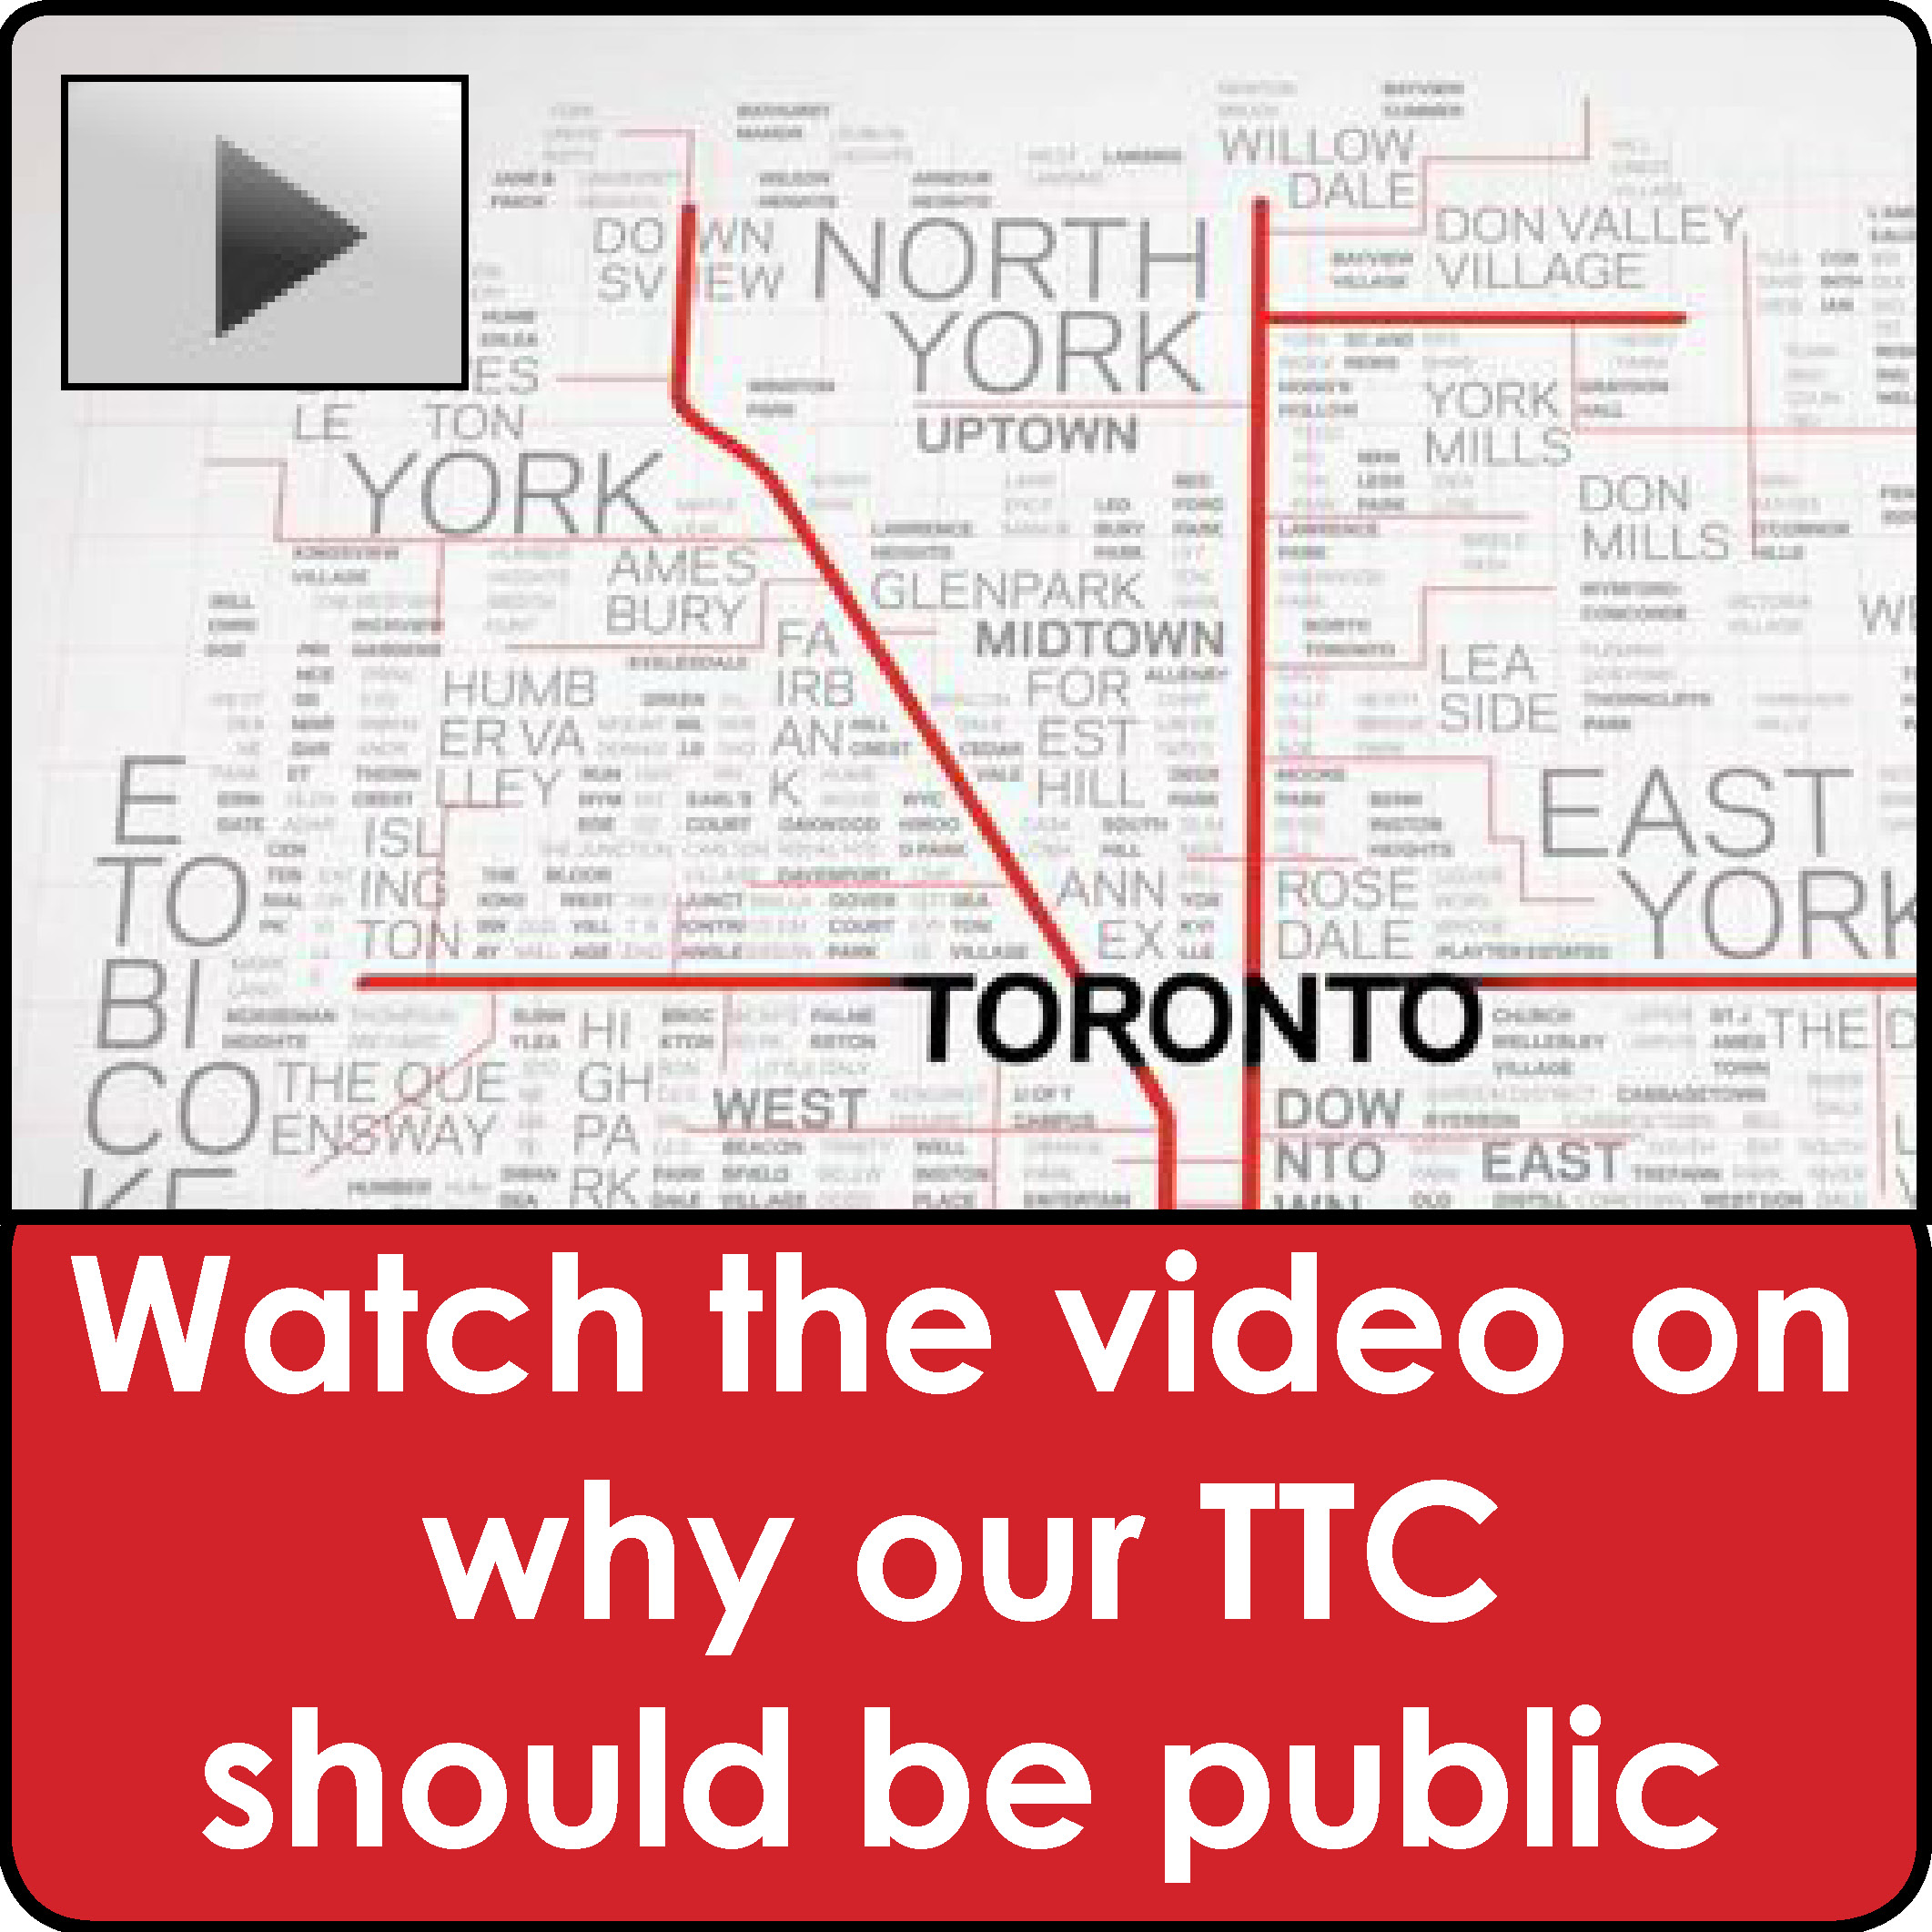 TTC should be kept public